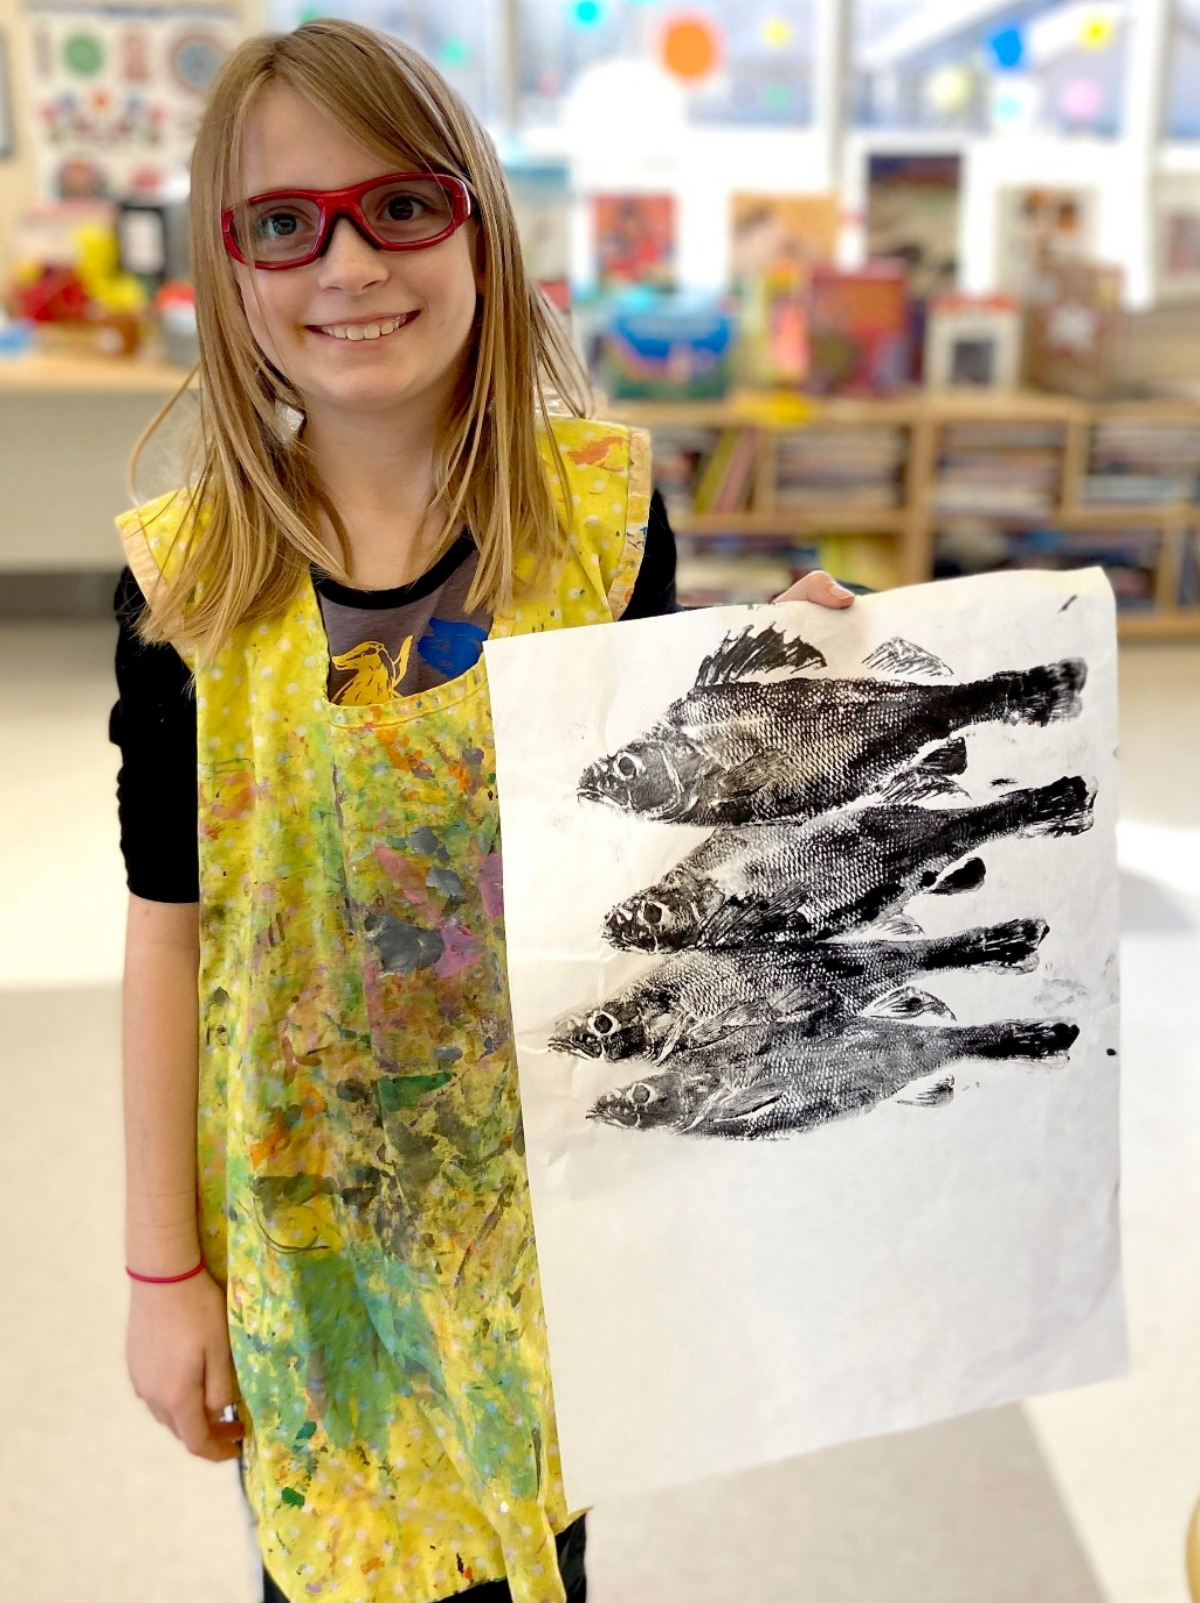 girl showing her painting of grass and flowers